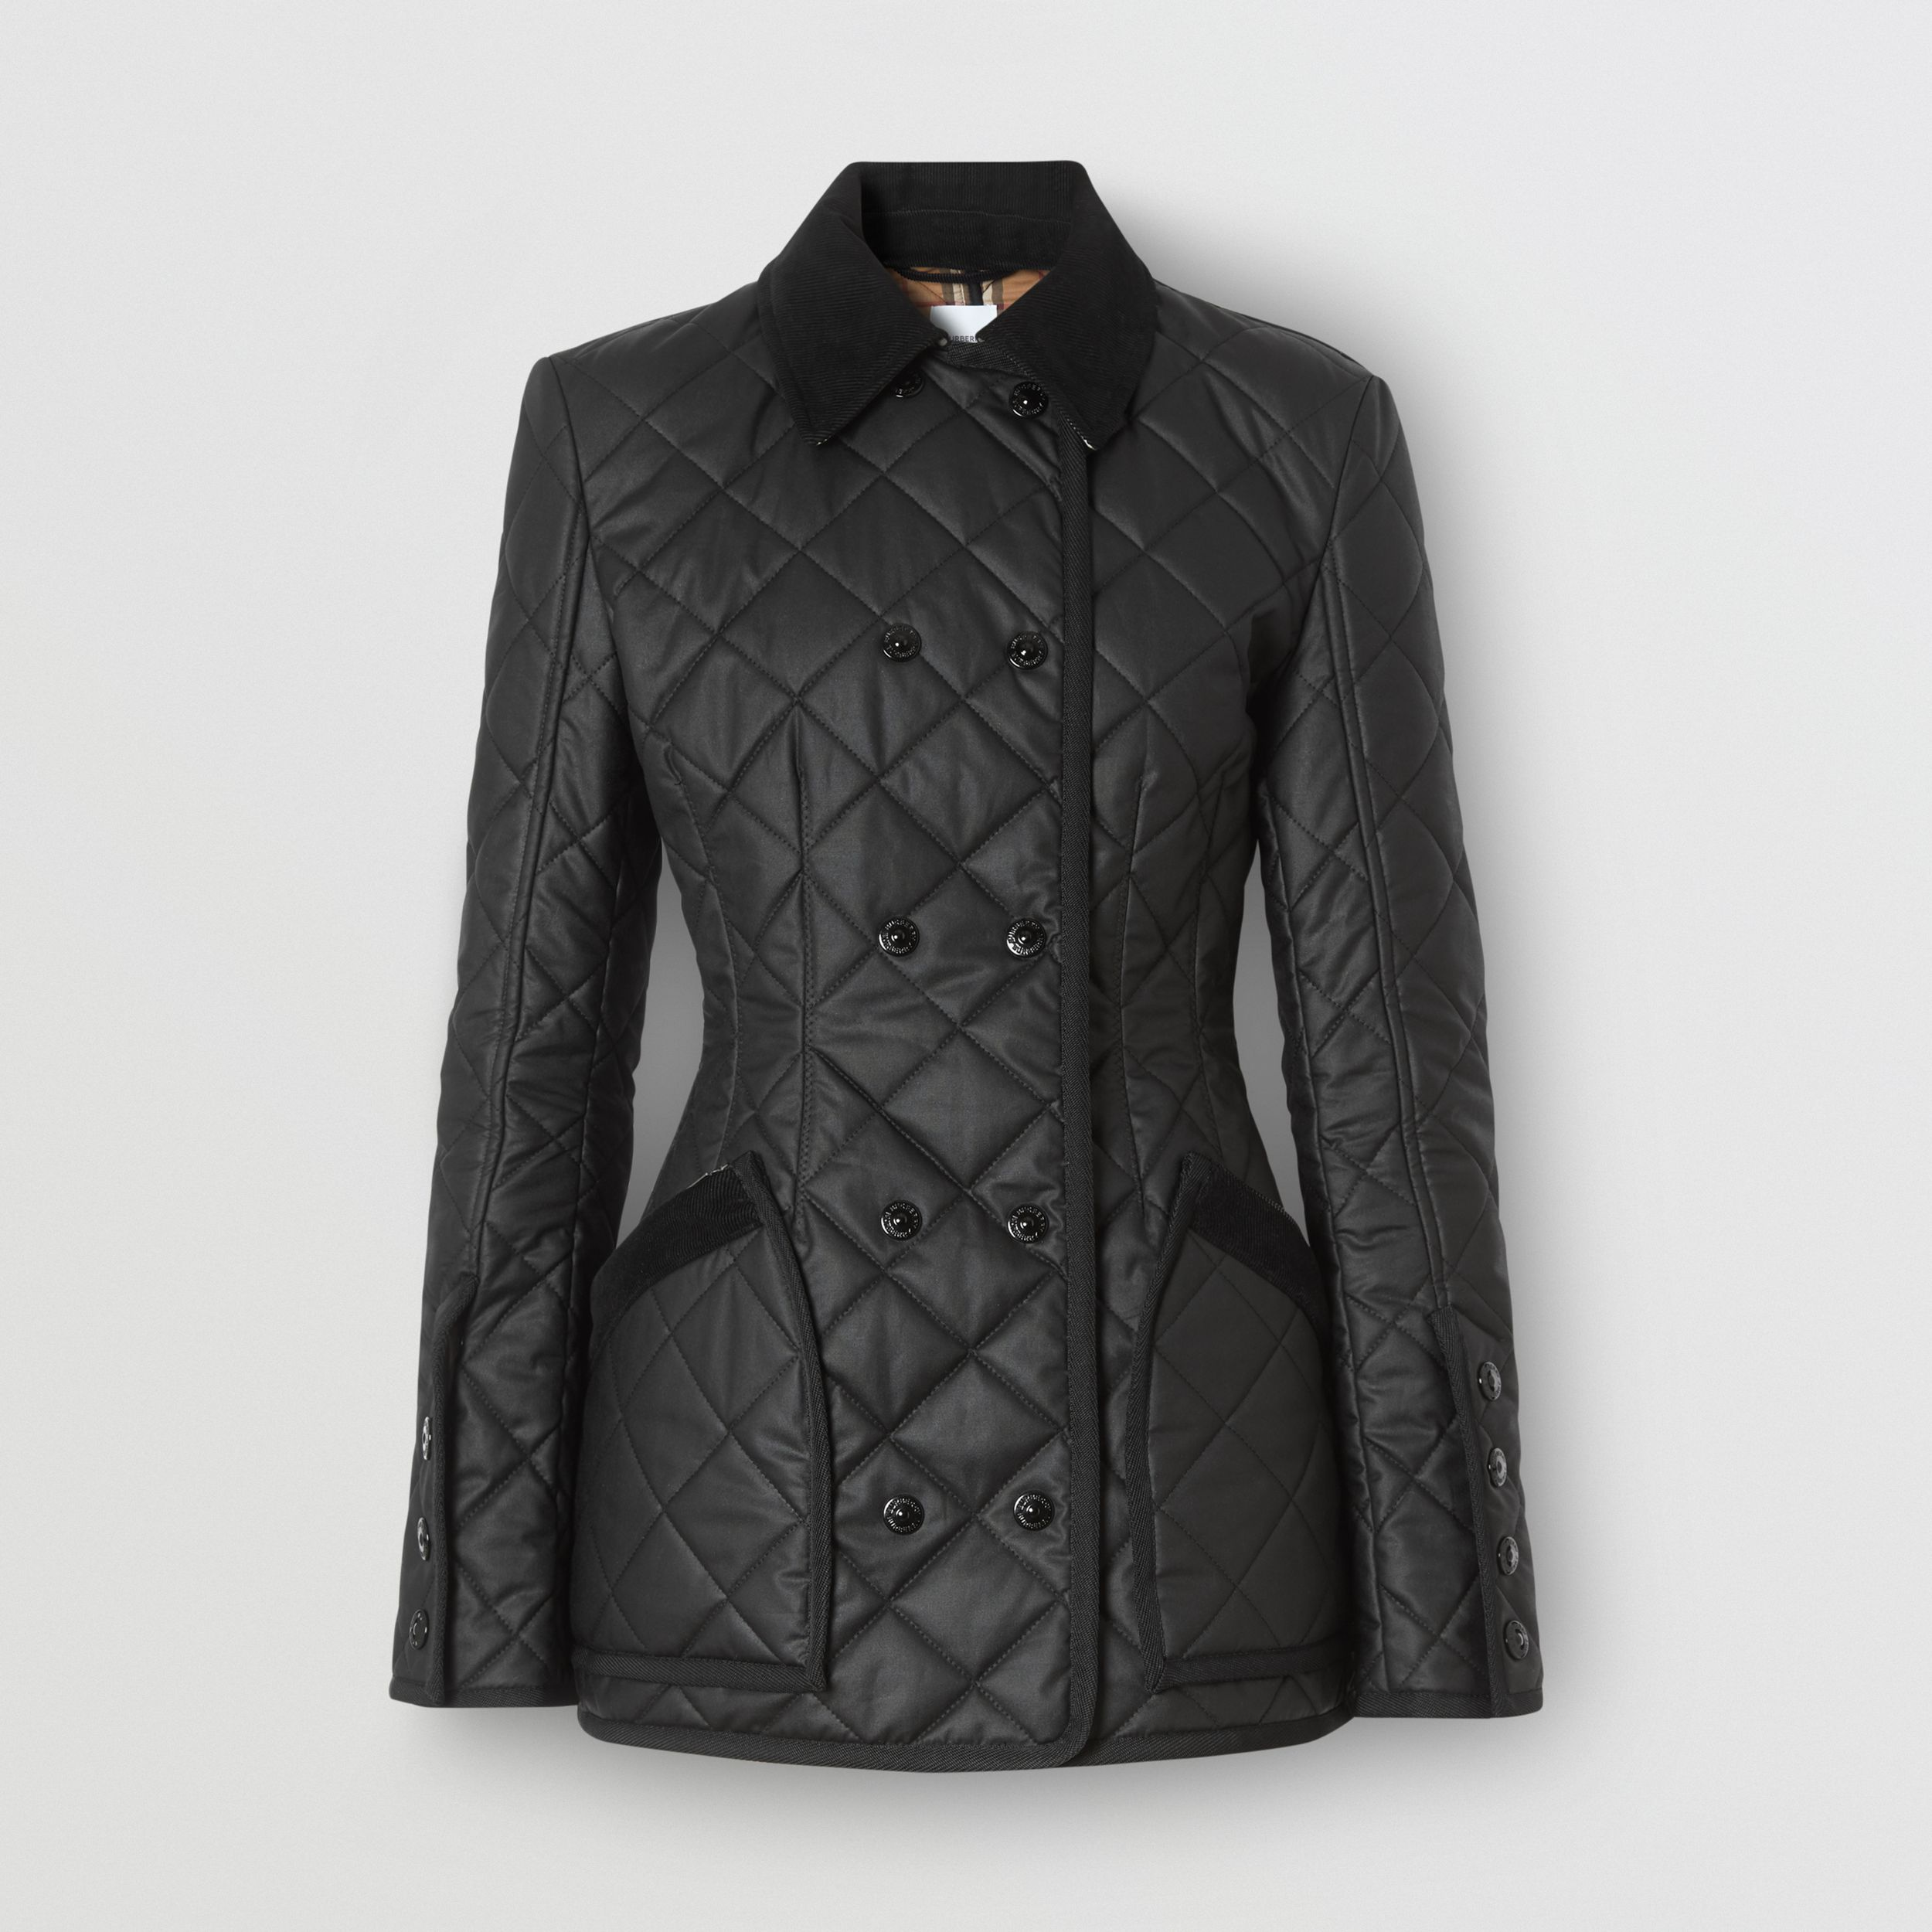 Diamond Quilted Waxed Cotton Riding Jacket in Black - Women | Burberry - 4